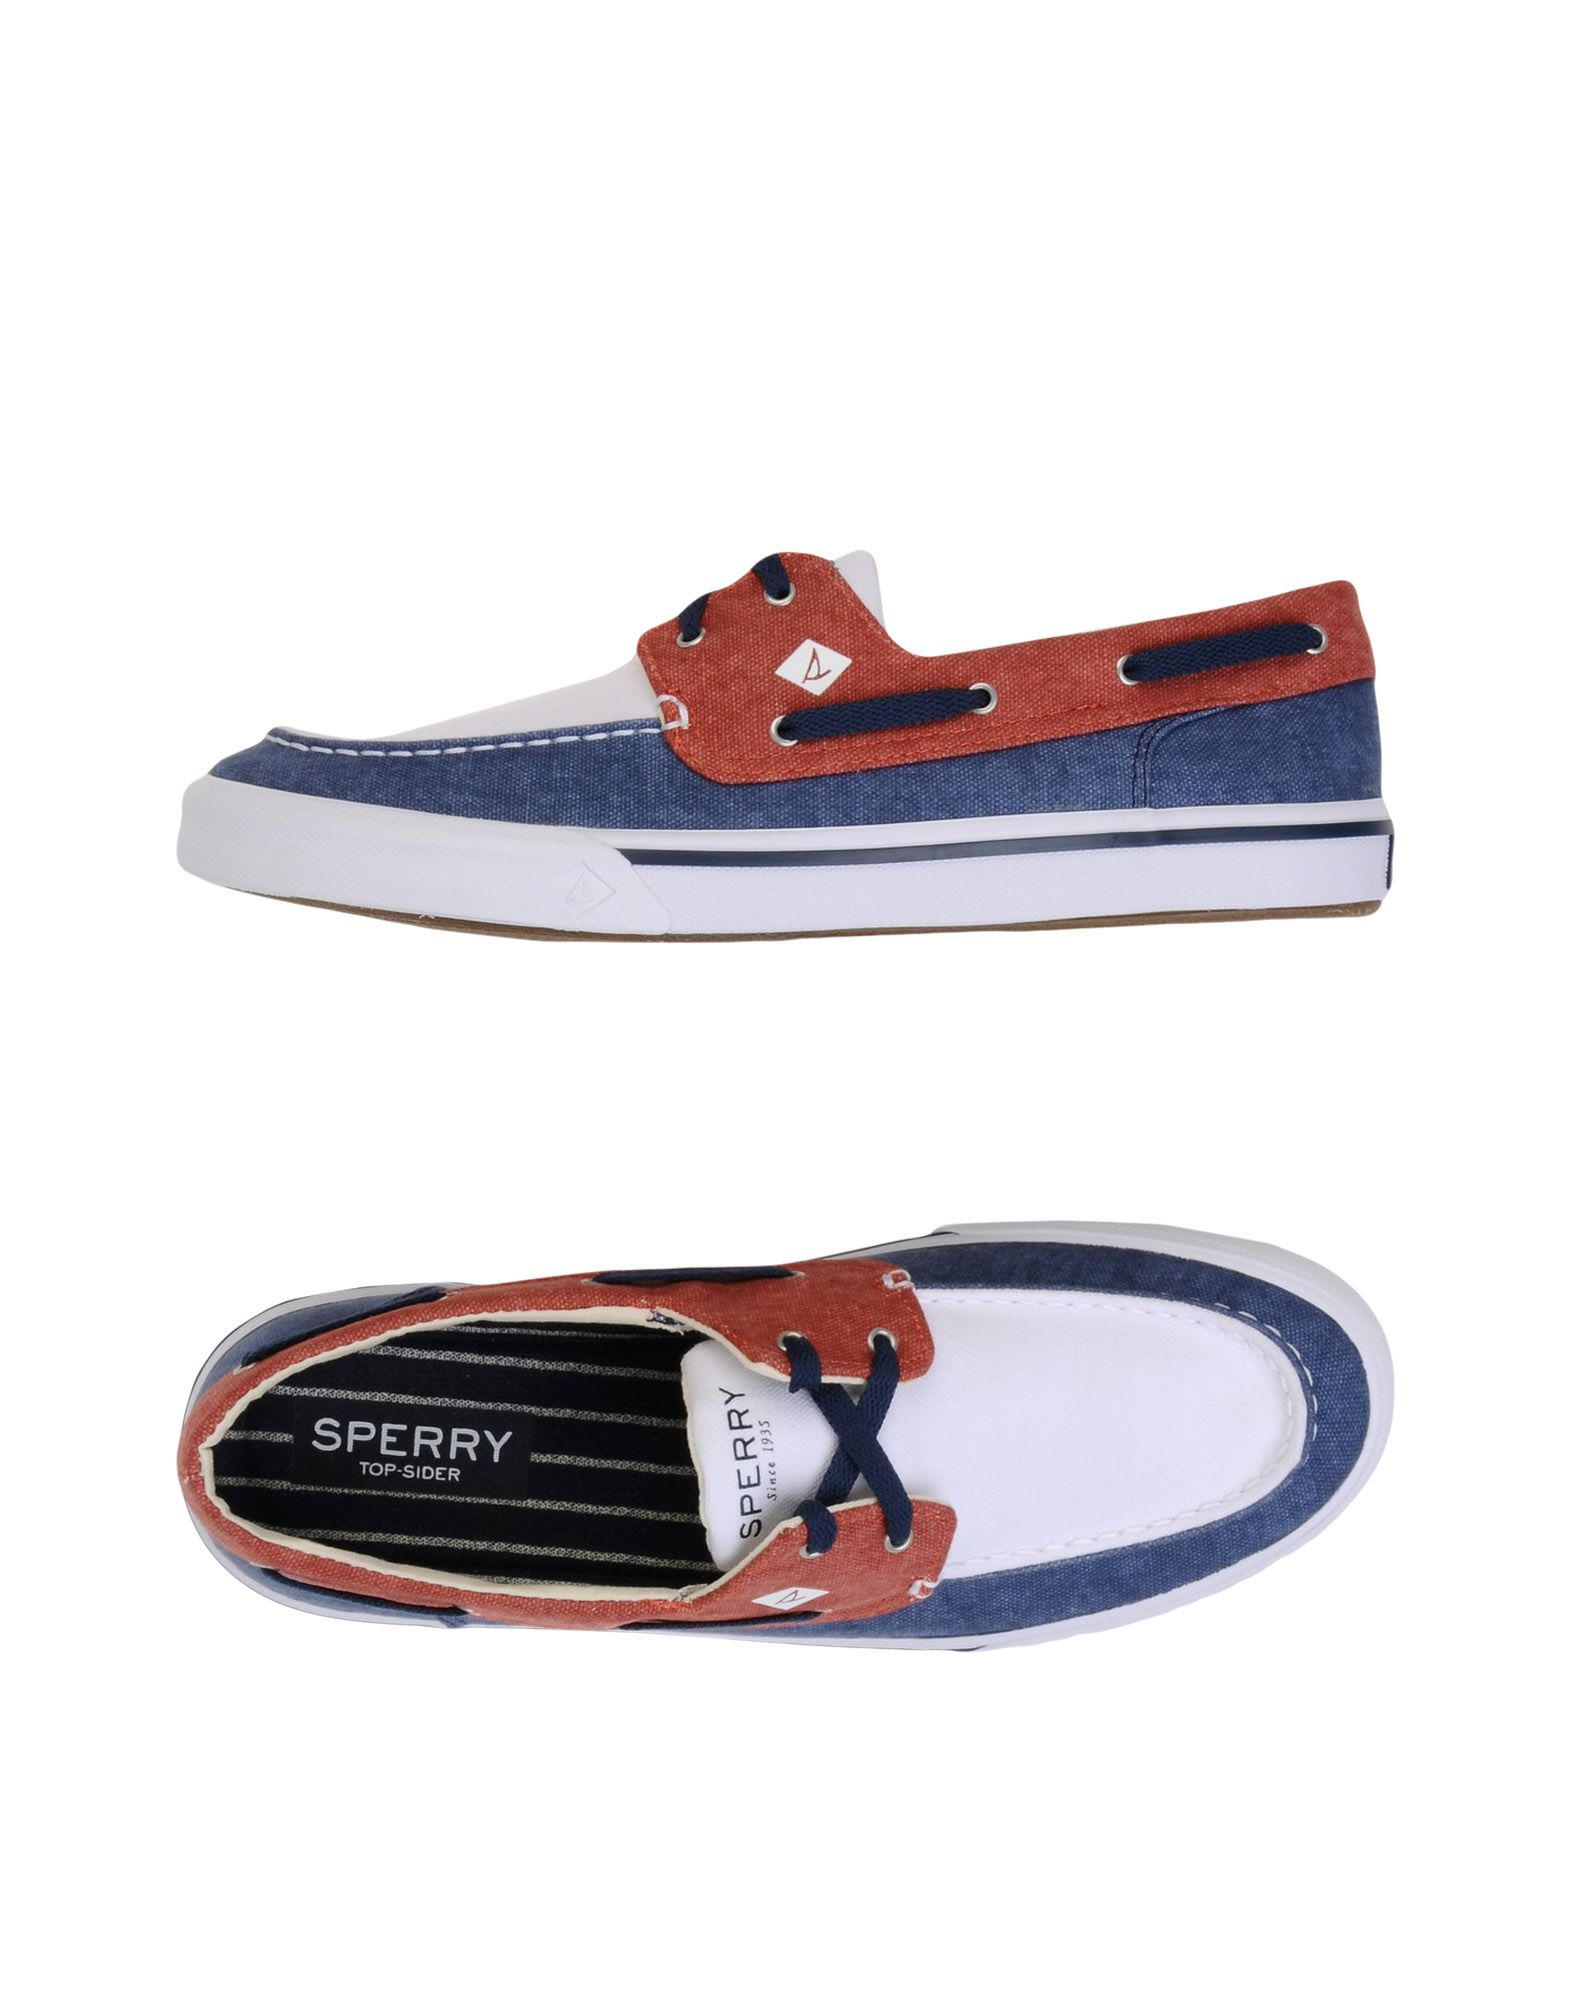 SPERRY TOP-SIDER Striper II Boat Washed